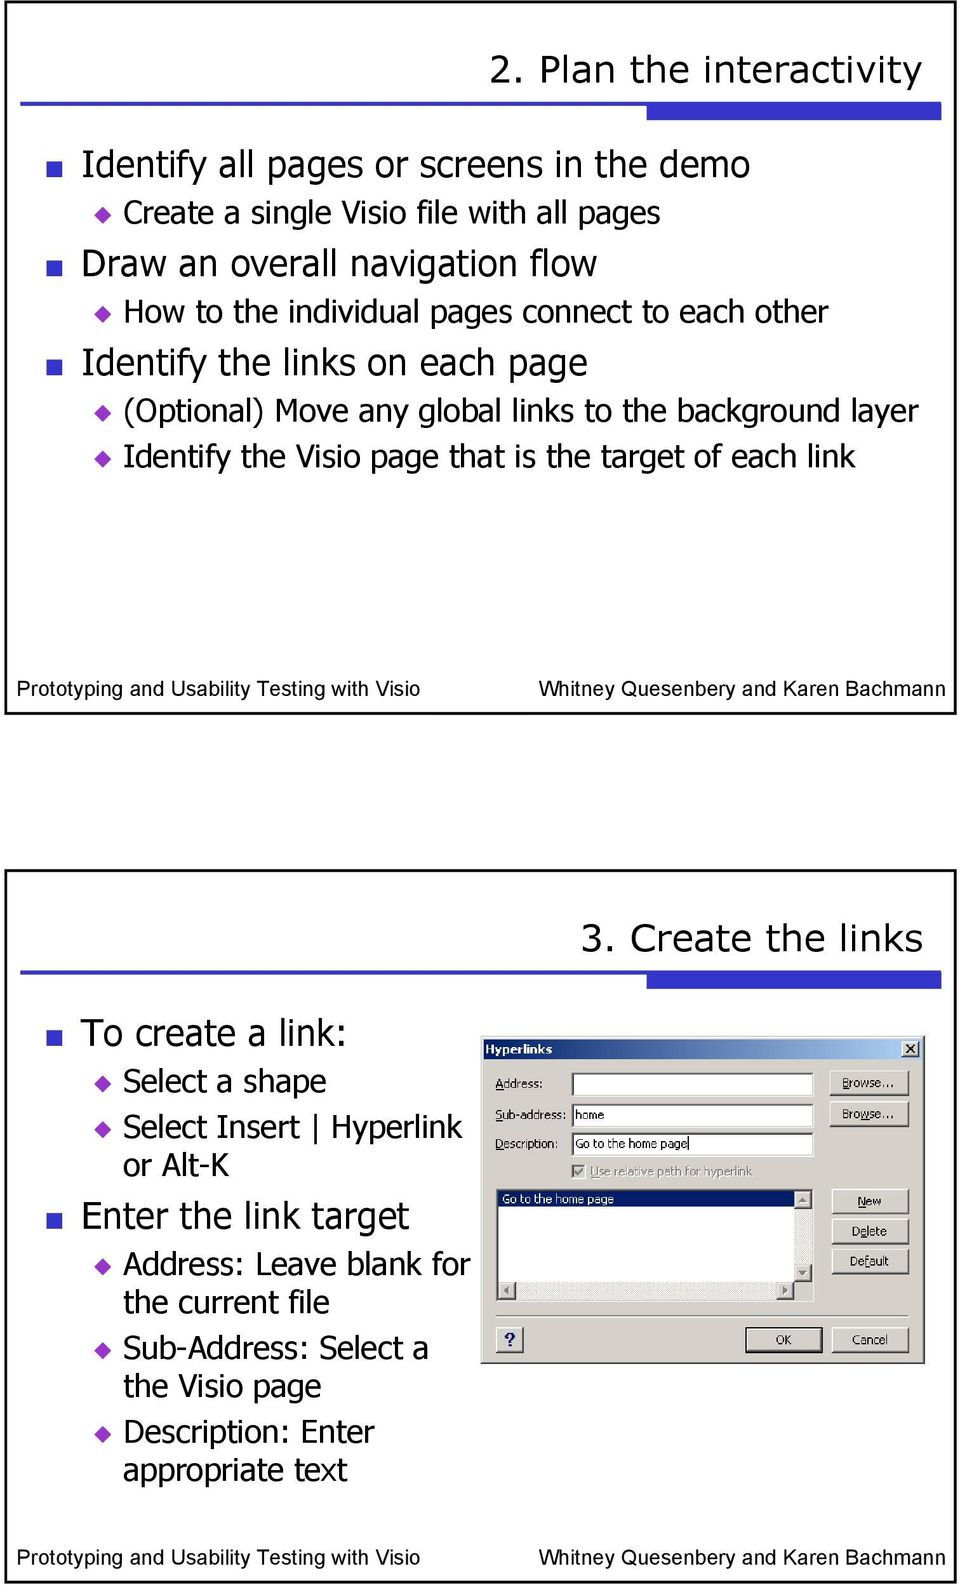 Prototyping and Usability Testing with Visio - PDF